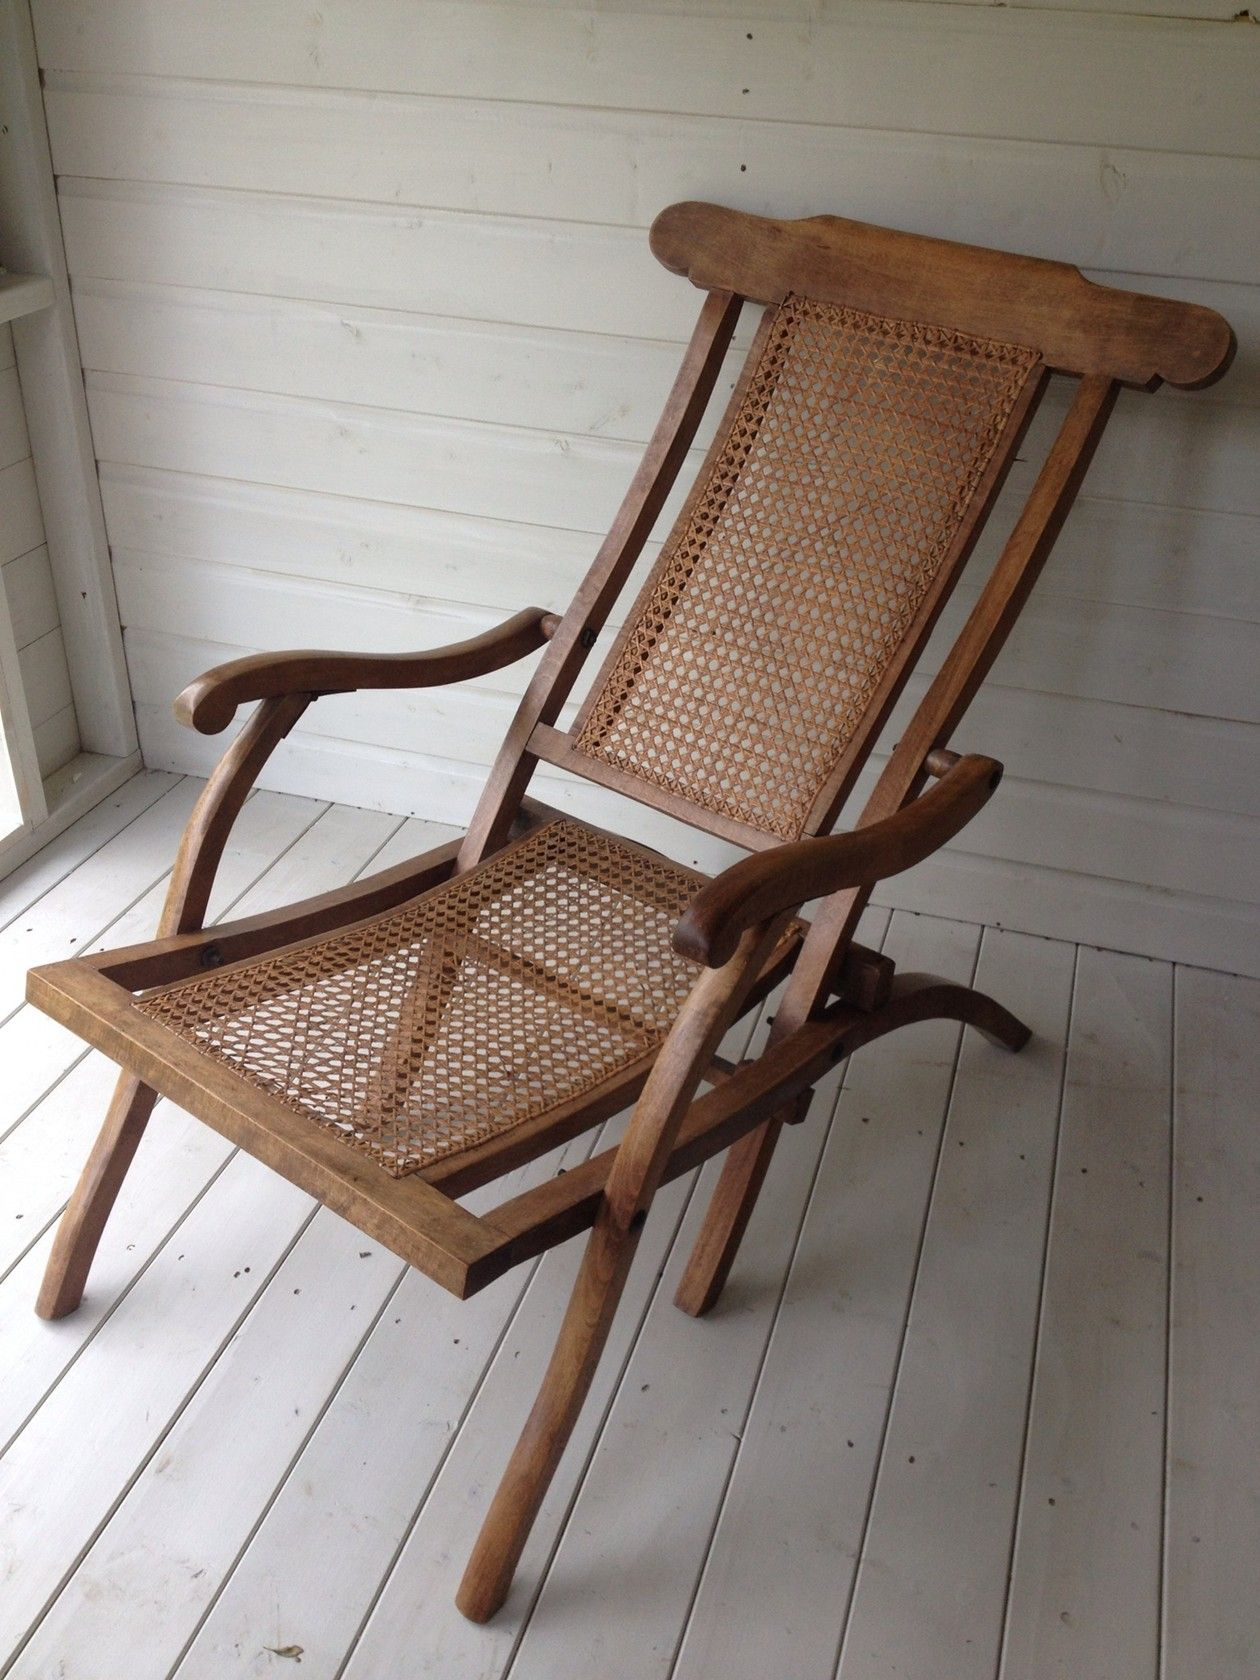 ANTIQUE WOODEN & RATTAN FOLDING STEAMER CHAIR - COLLECTION ONLY CAN NOT POST - ANTIQUE WOODEN & RATTAN FOLDING STEAMER CHAIR - COLLECTION ONLY CAN